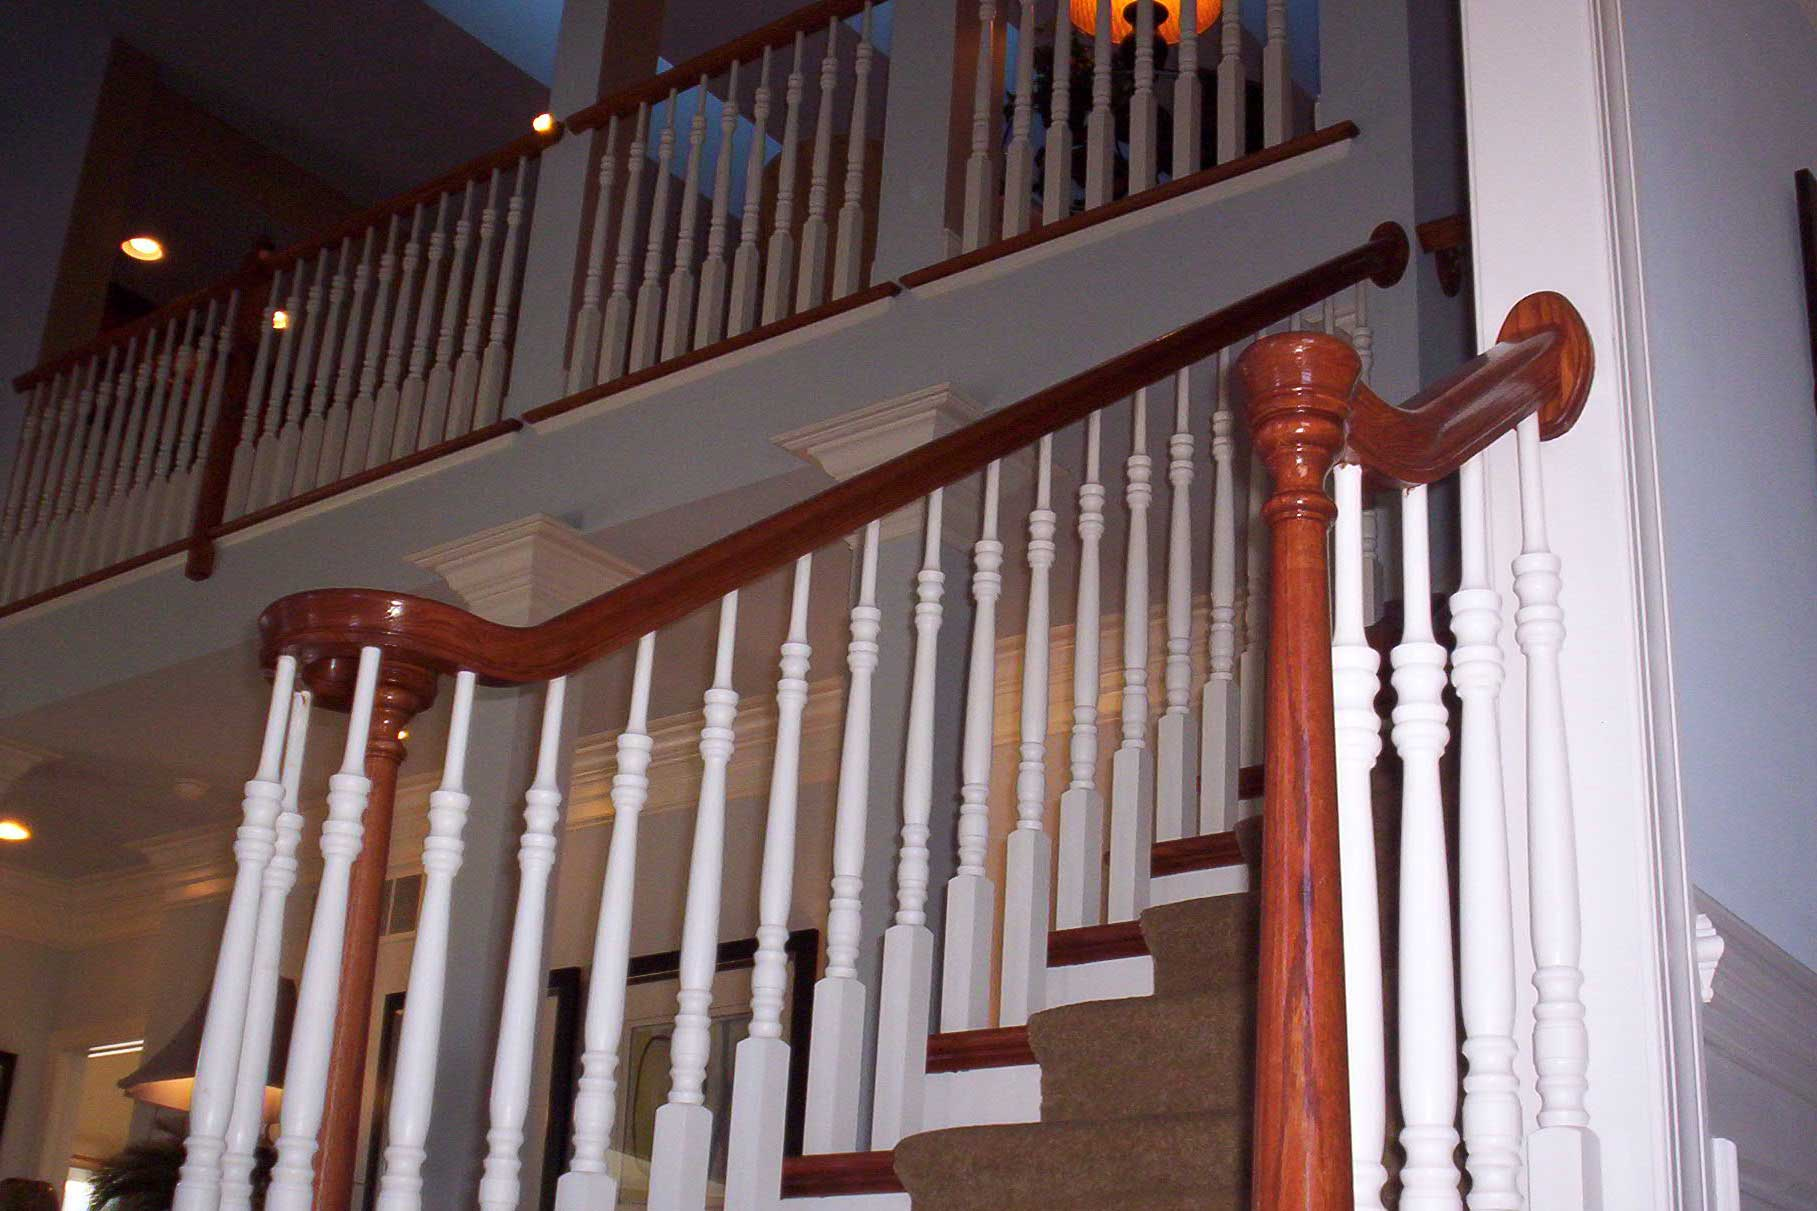 Handrail with Upgrade Spindles - Toll Brothers Grandview Model